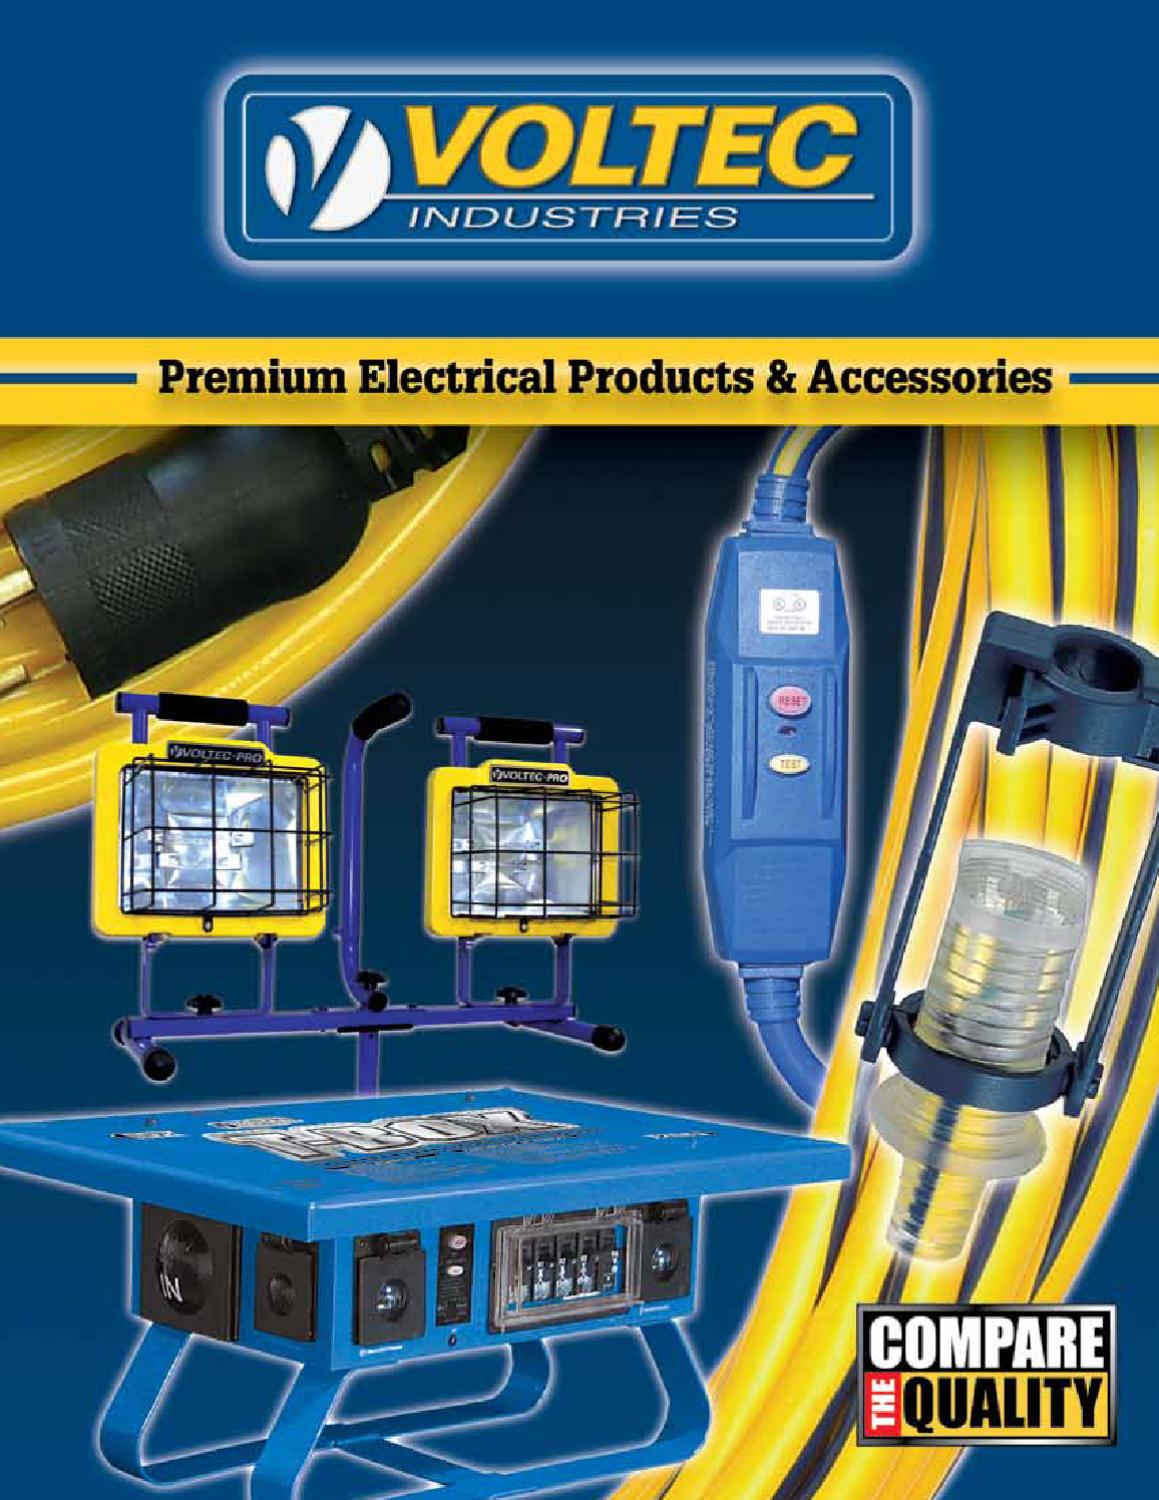 Voltec Power Lighting Products By Industries Issuu Extension Cord 30 Rv Wiring Diagram On Amp 3 Pole 4 Wire 600v